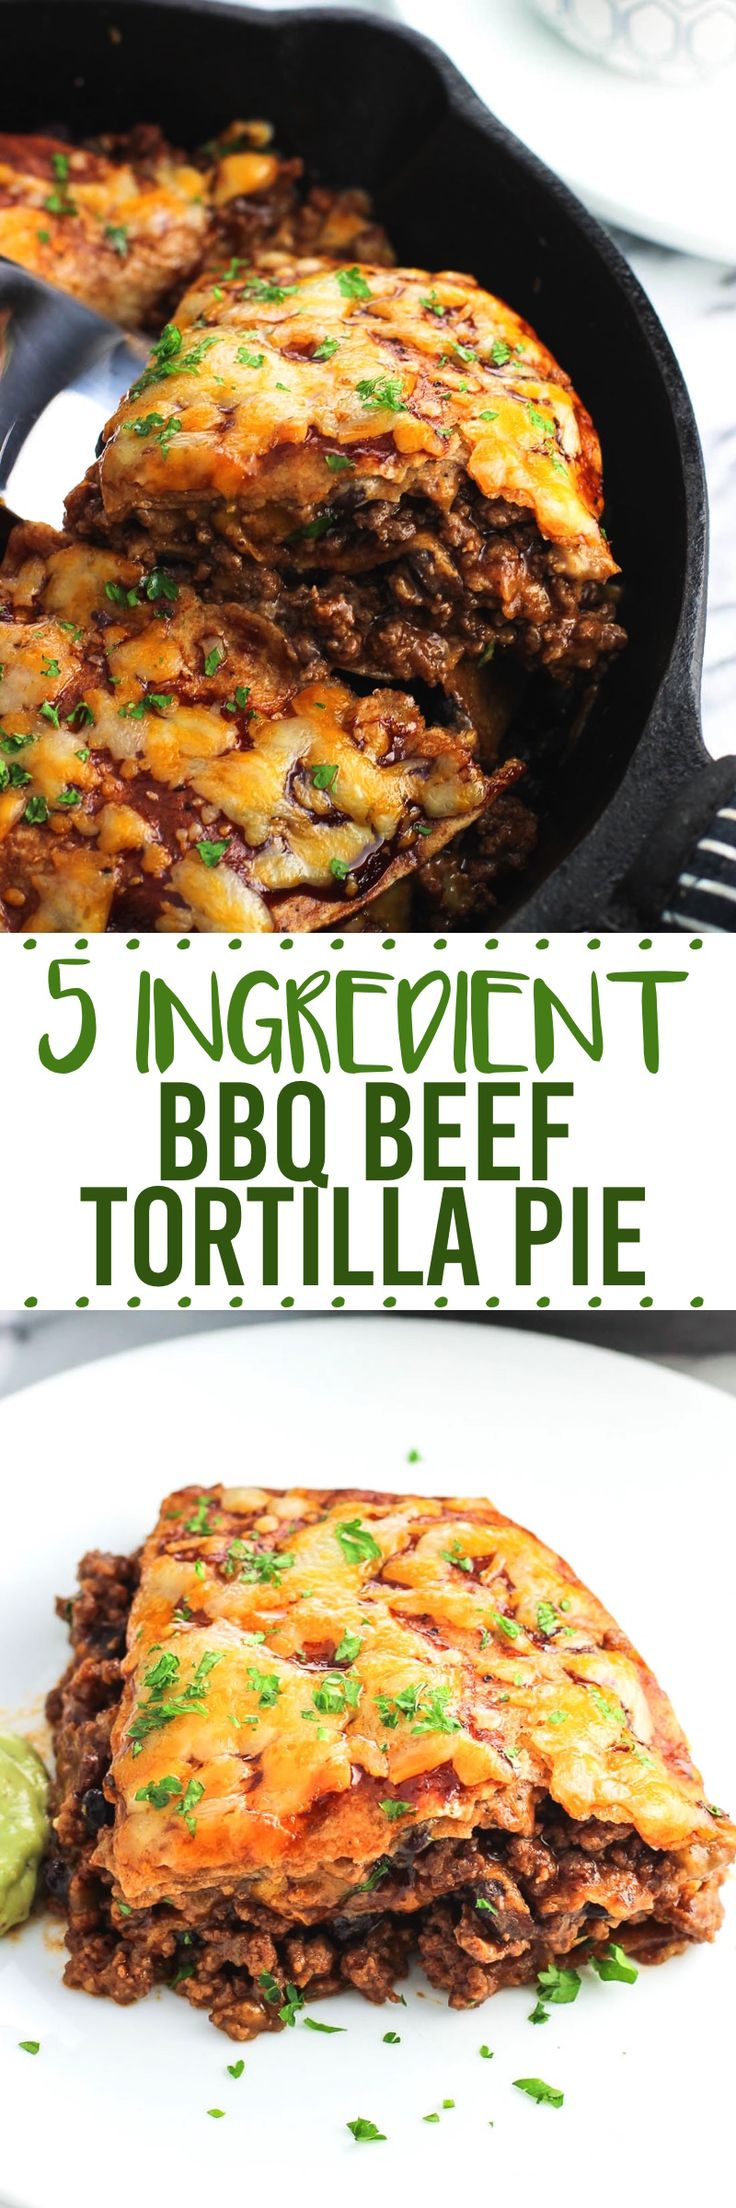 BBQ Beef Tortilla Pie is a savory, satisfying main dish perfect for weeknights. It's ready in 30 minutes and uses just five ingredients. Customizable, too.